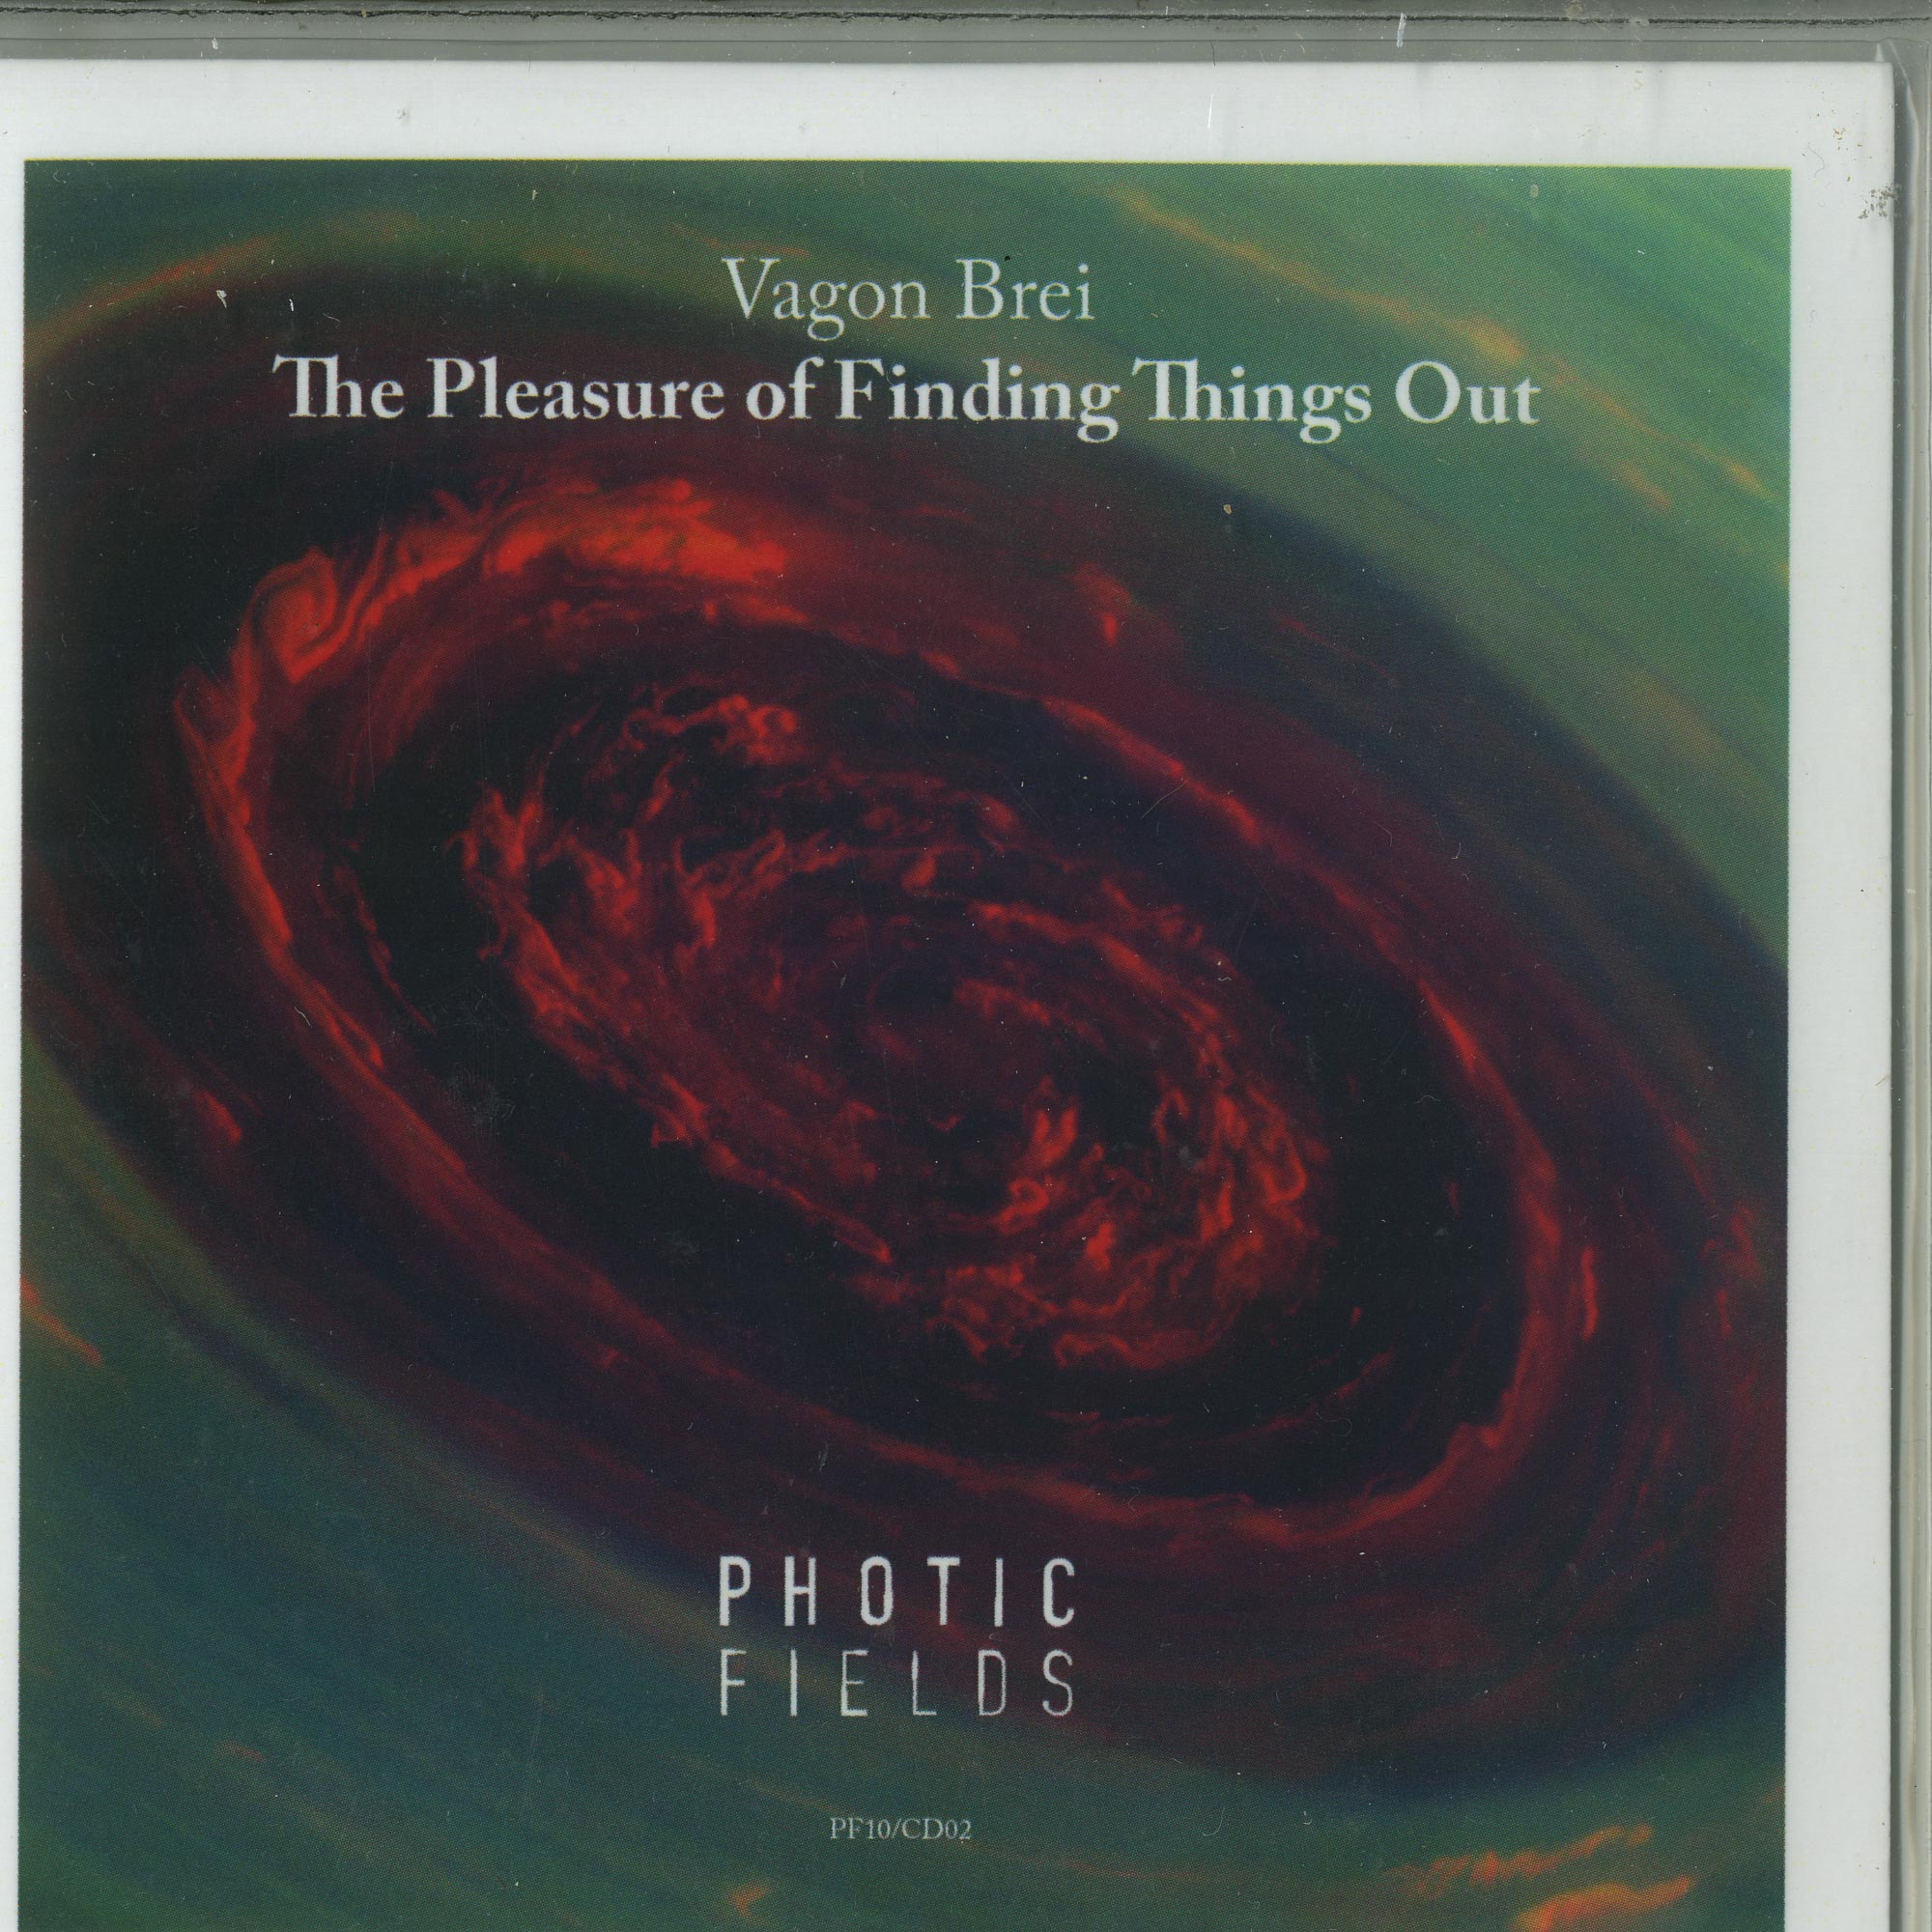 Vagon Brei - THE PLEASURE OF FINDING THINGS OUT